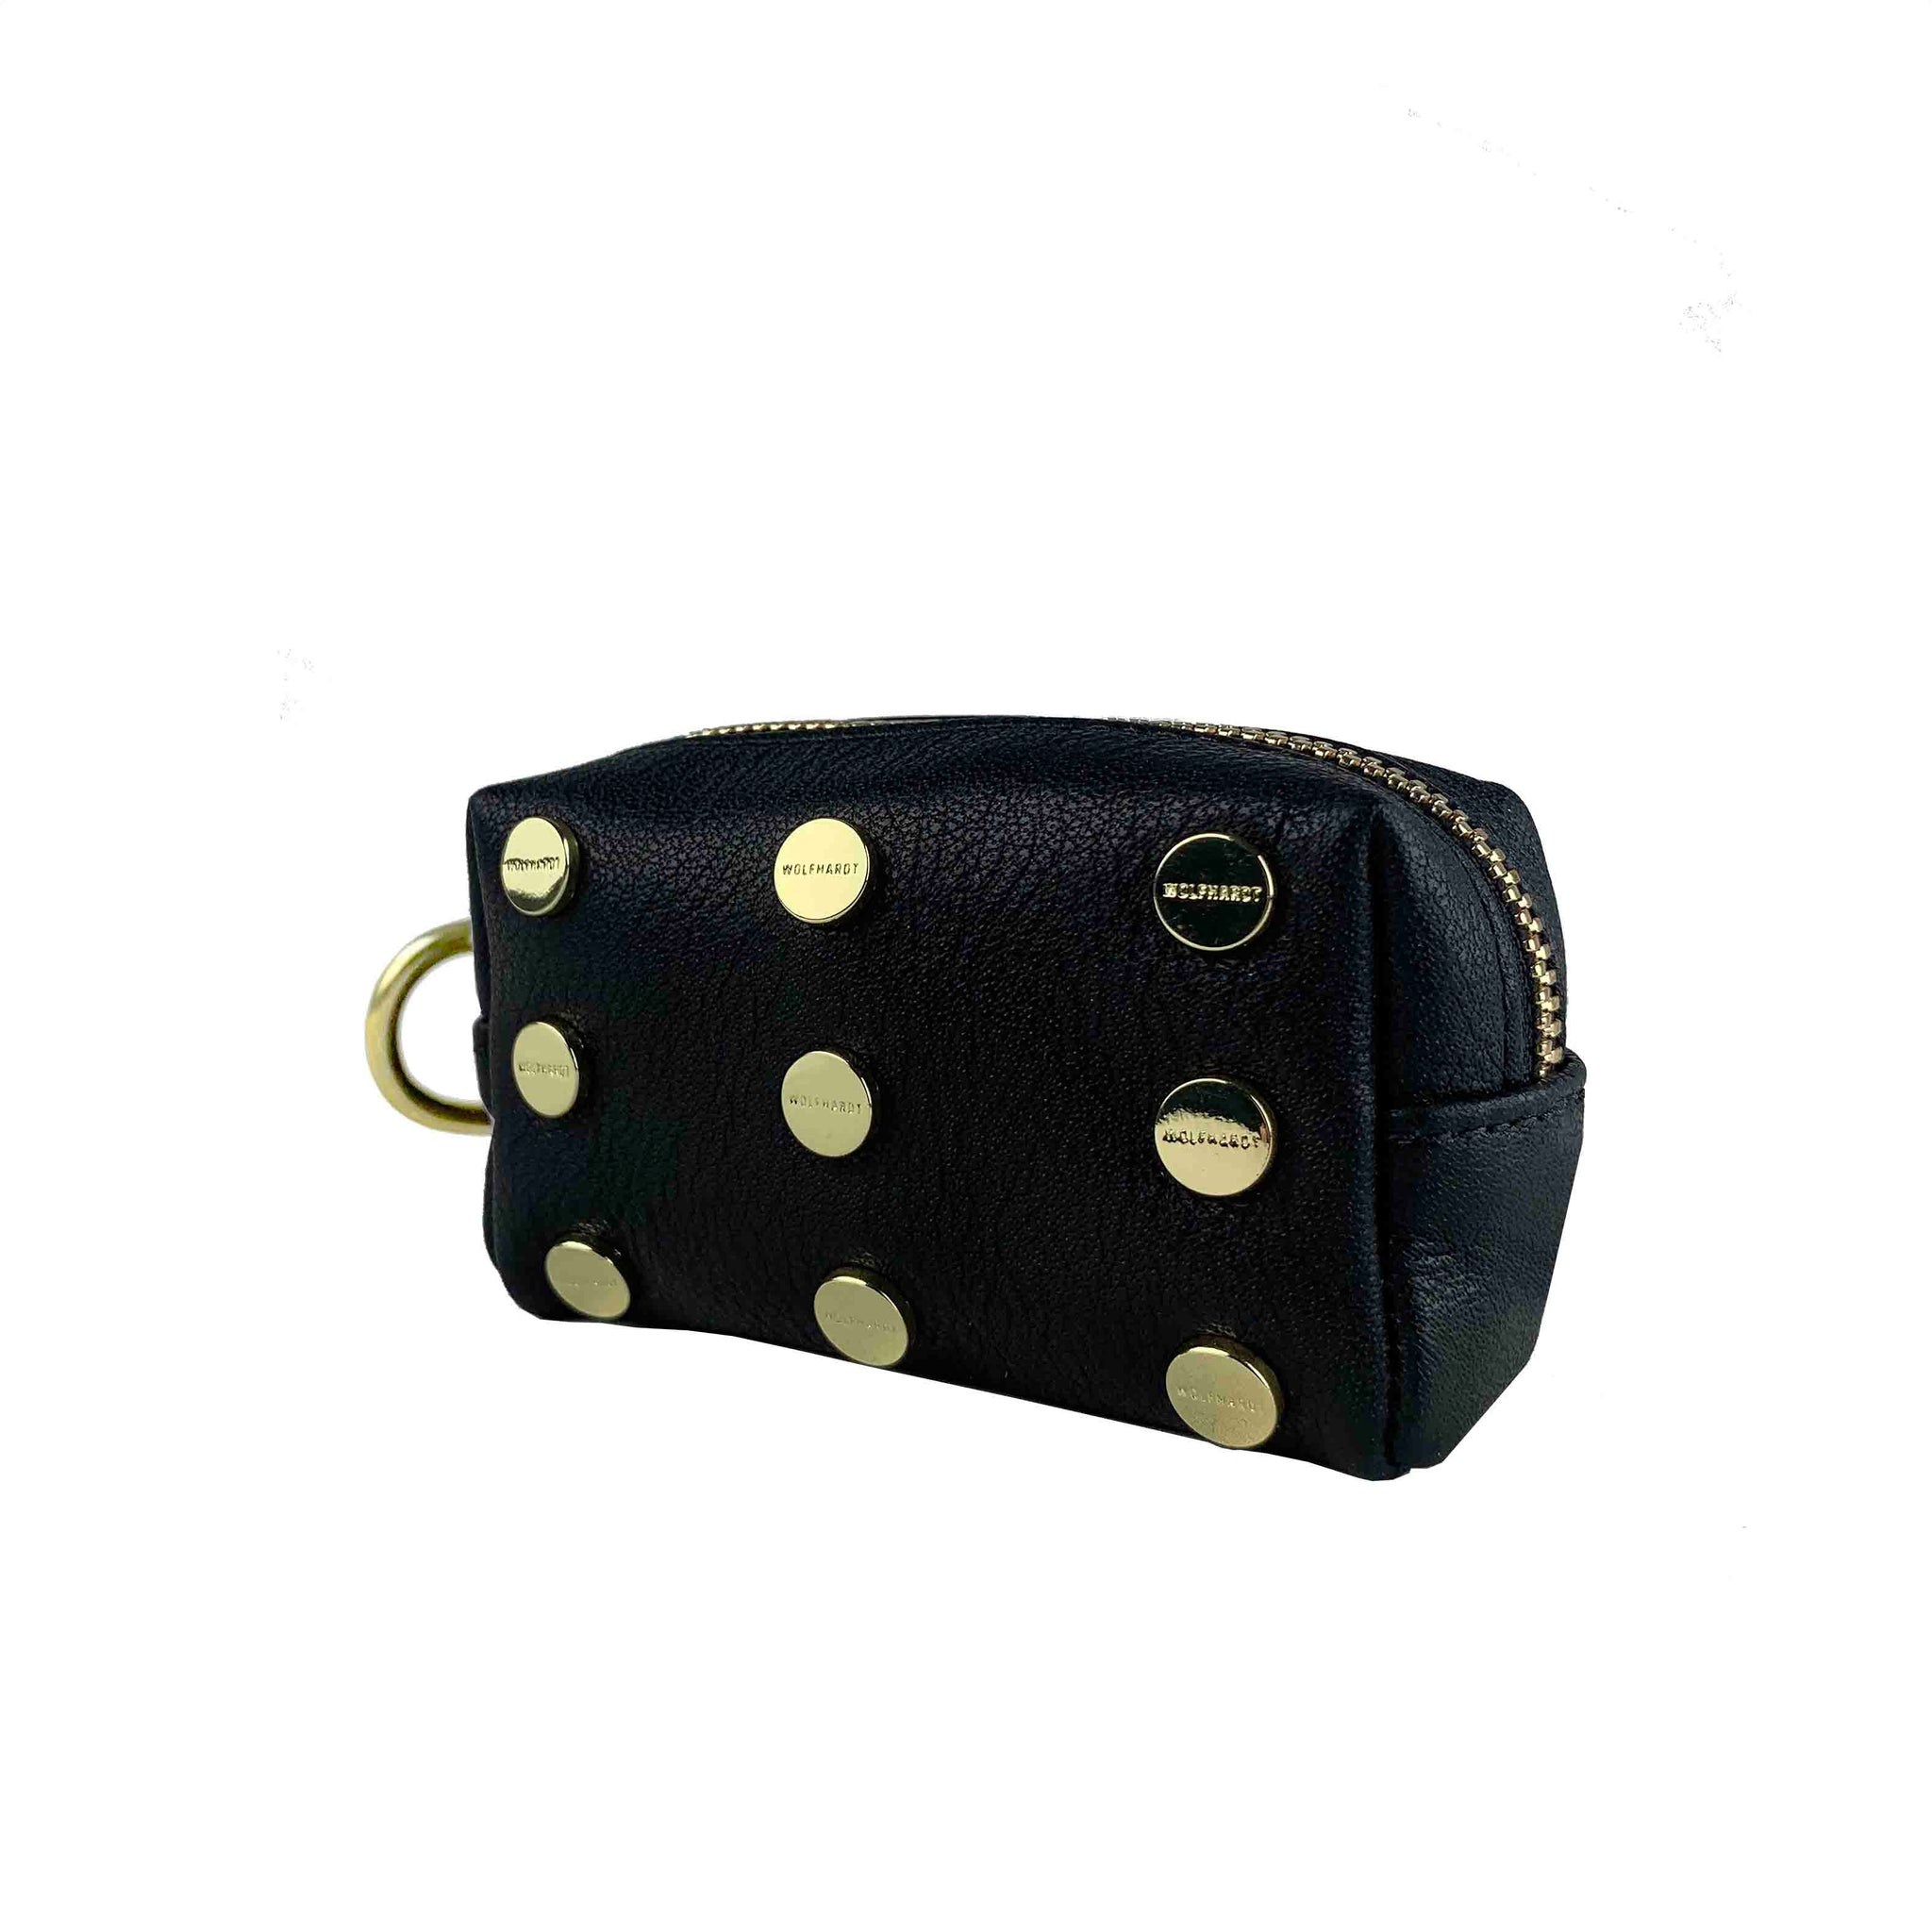 BLACK LEATHER WOMEN'S STUDDED WENIG PILL CASE